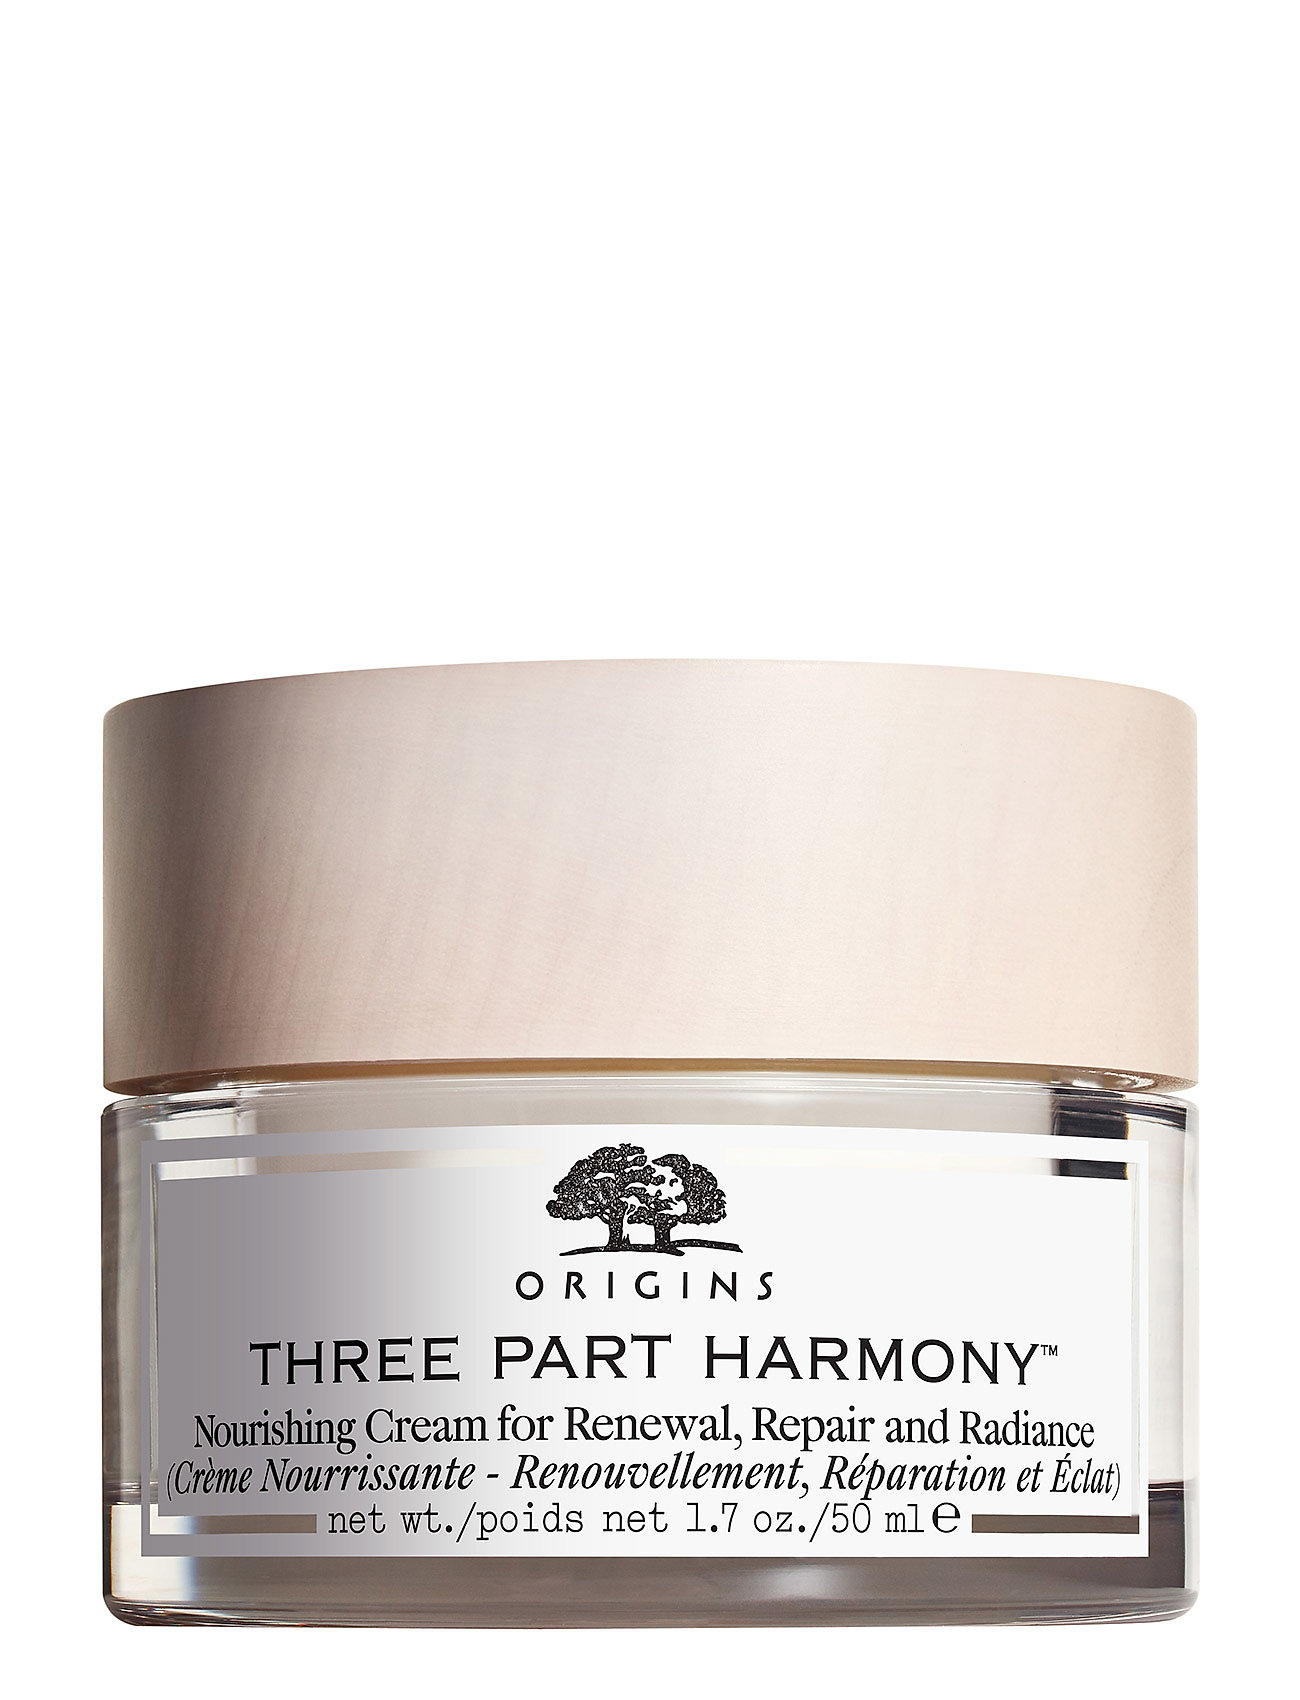 origins Three-part harmony™ nourishing cream fra boozt.com dk